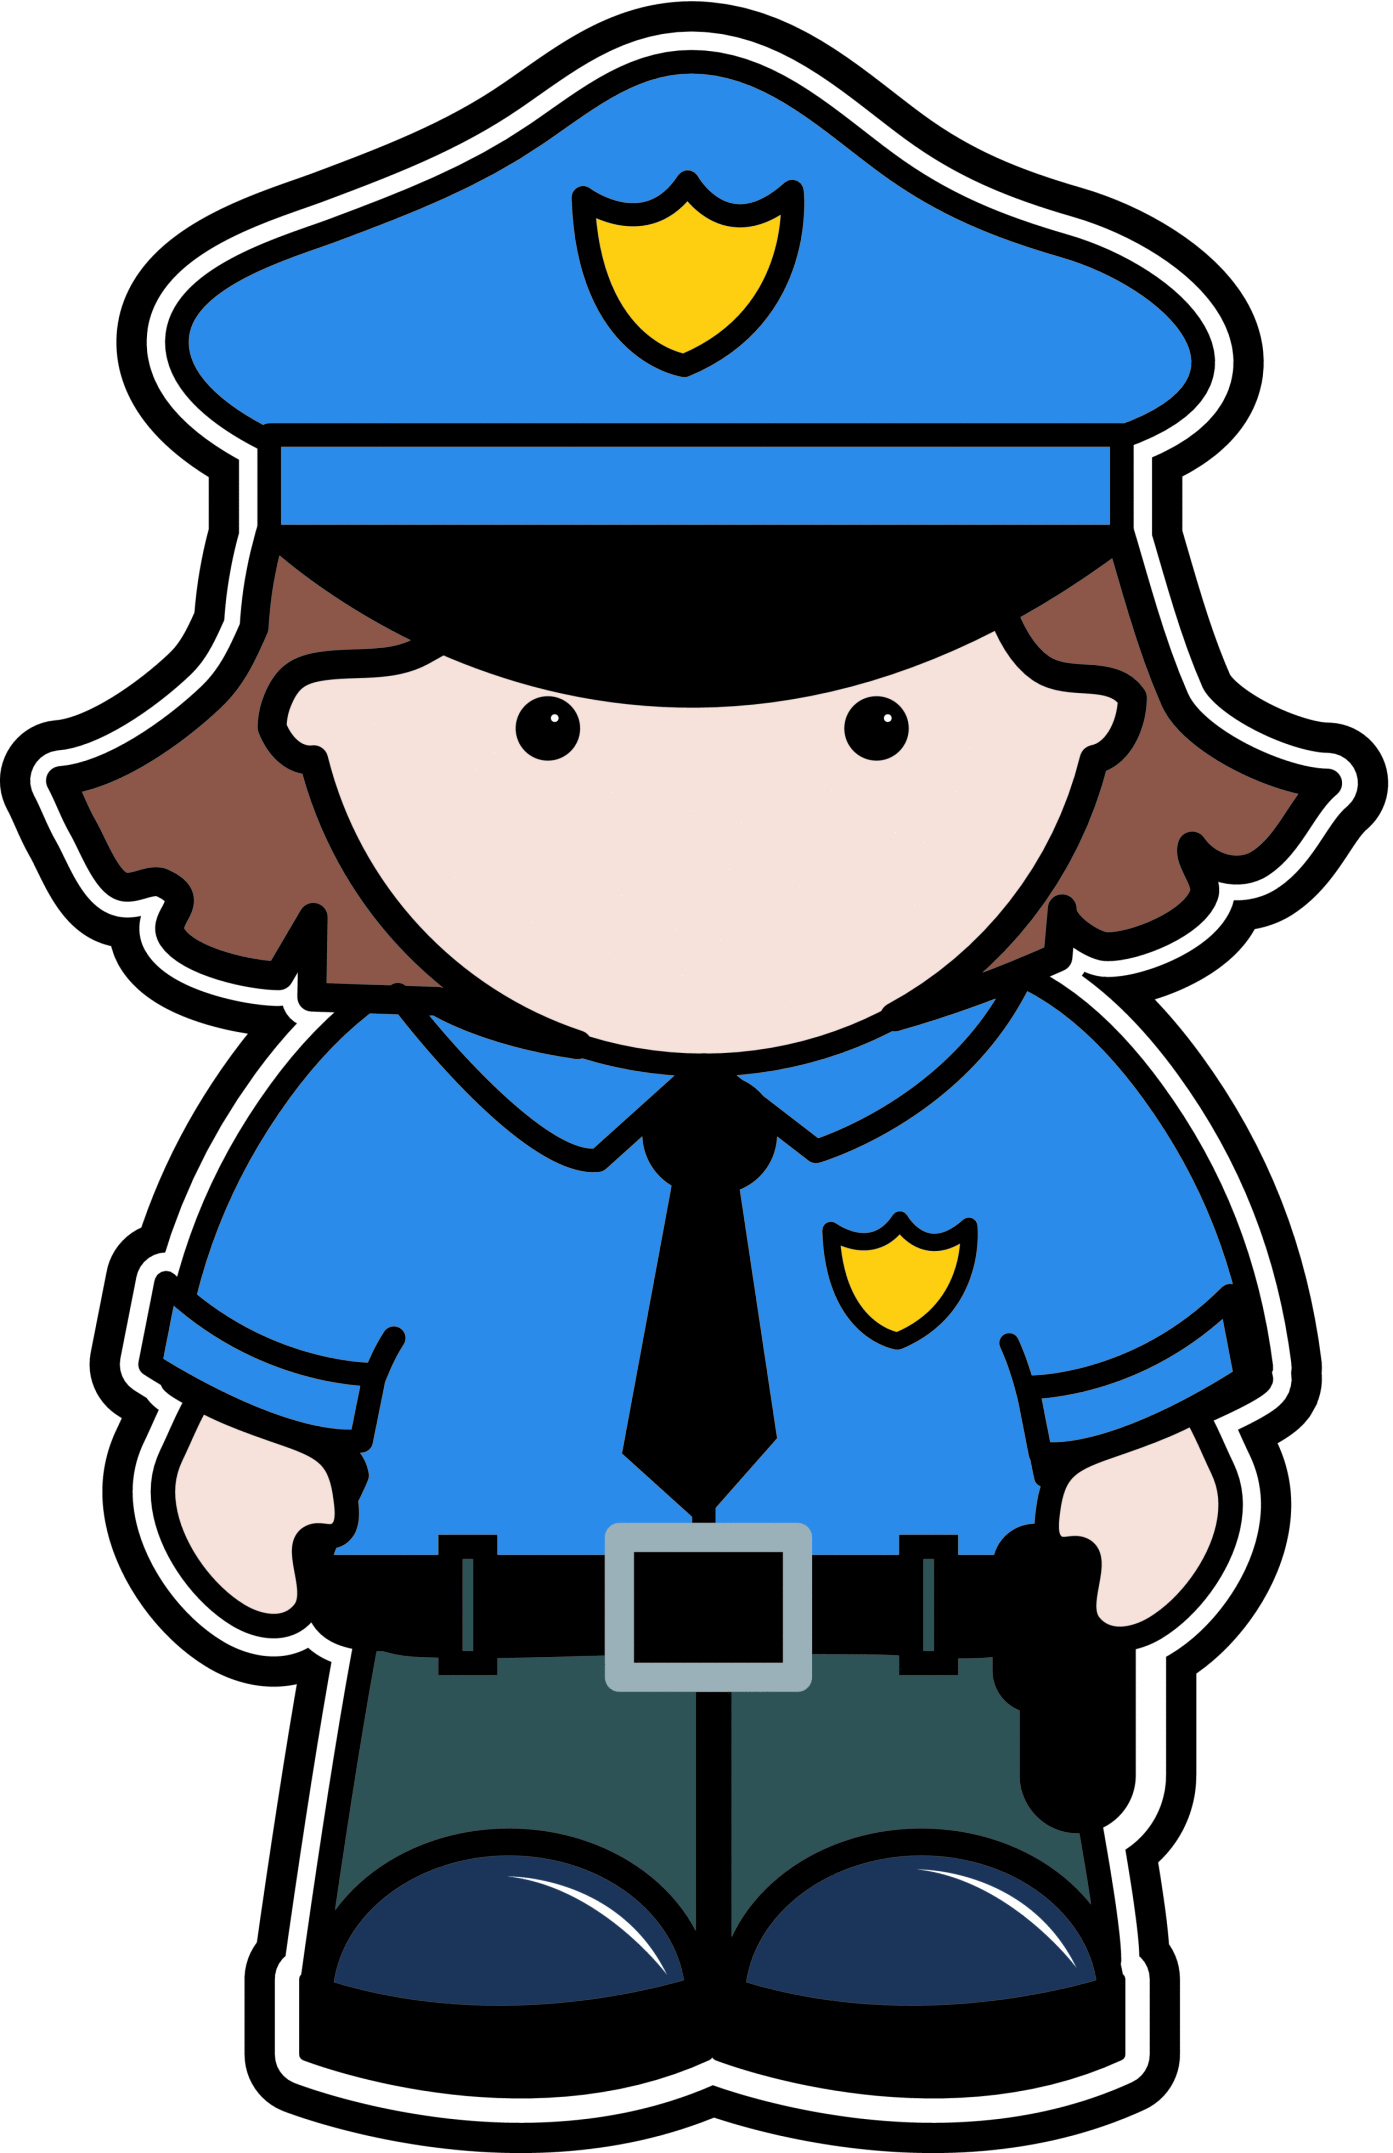 Policeman clipart authority. Police badge at getdrawings